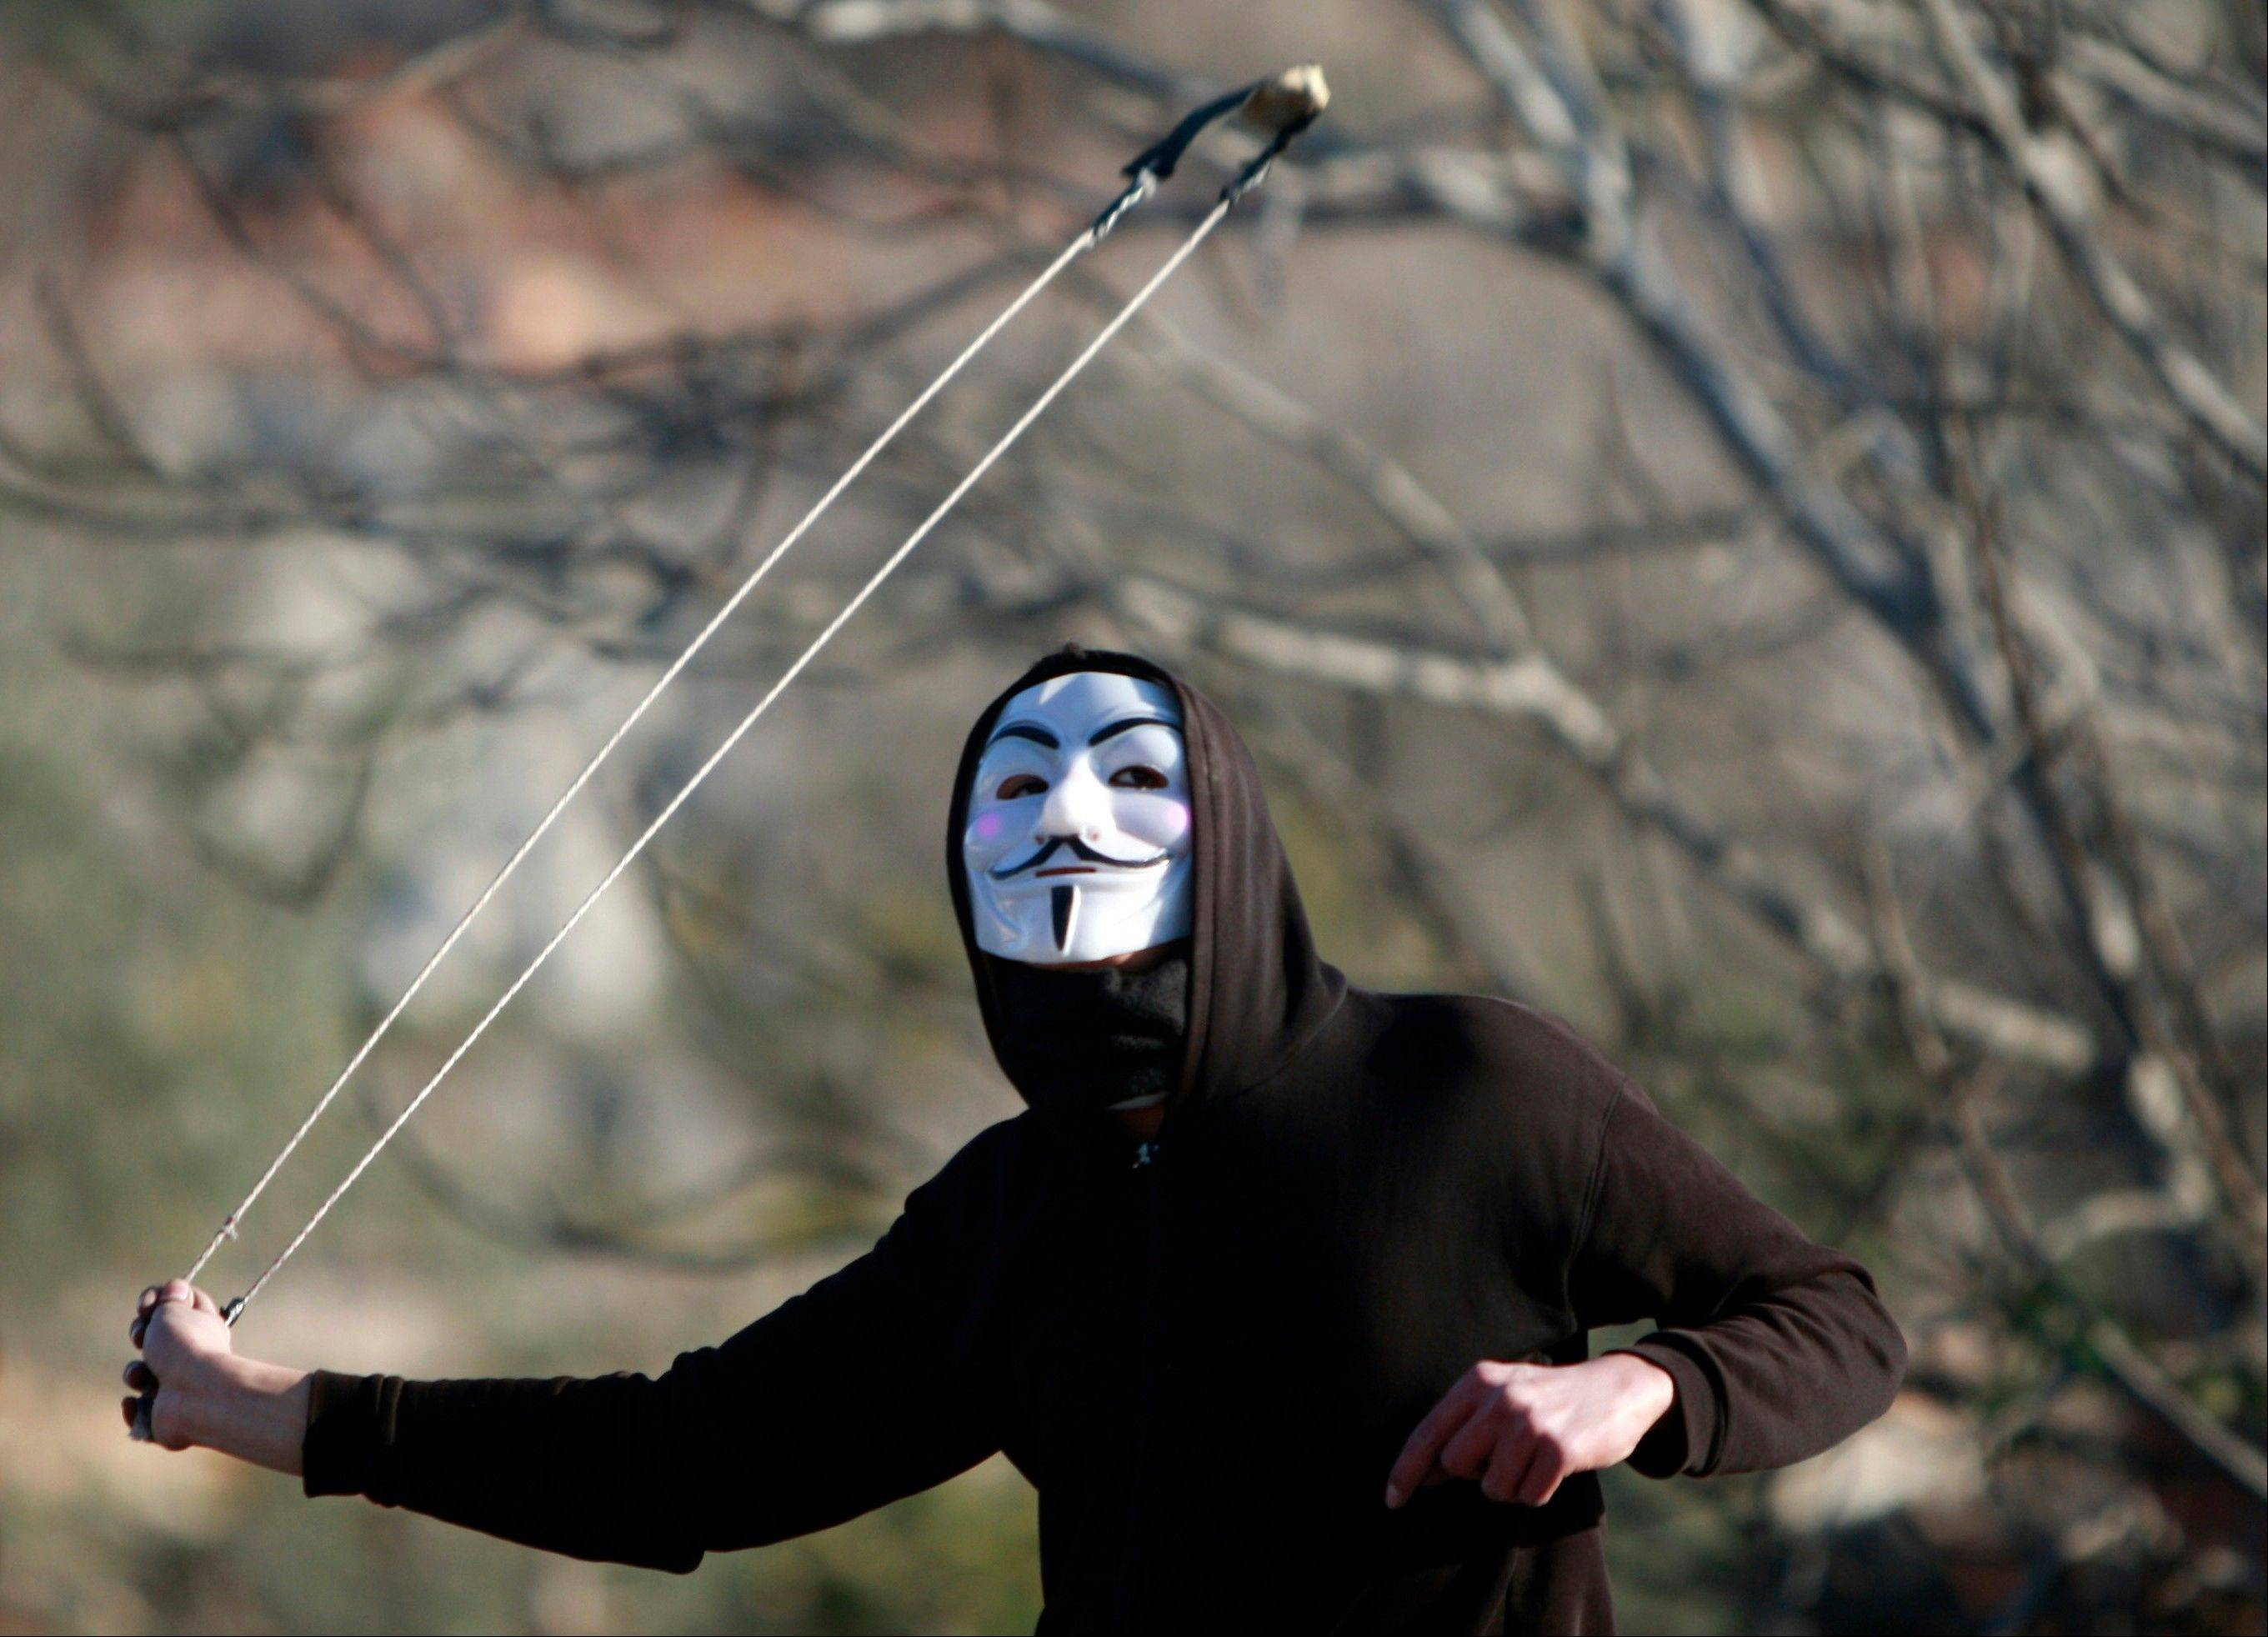 A Palestinian uses a slingshot Friday to hurl stones at Israeli soldiers during a weekly protest in the village of Silwad, near the West Bank city of Ramallah.